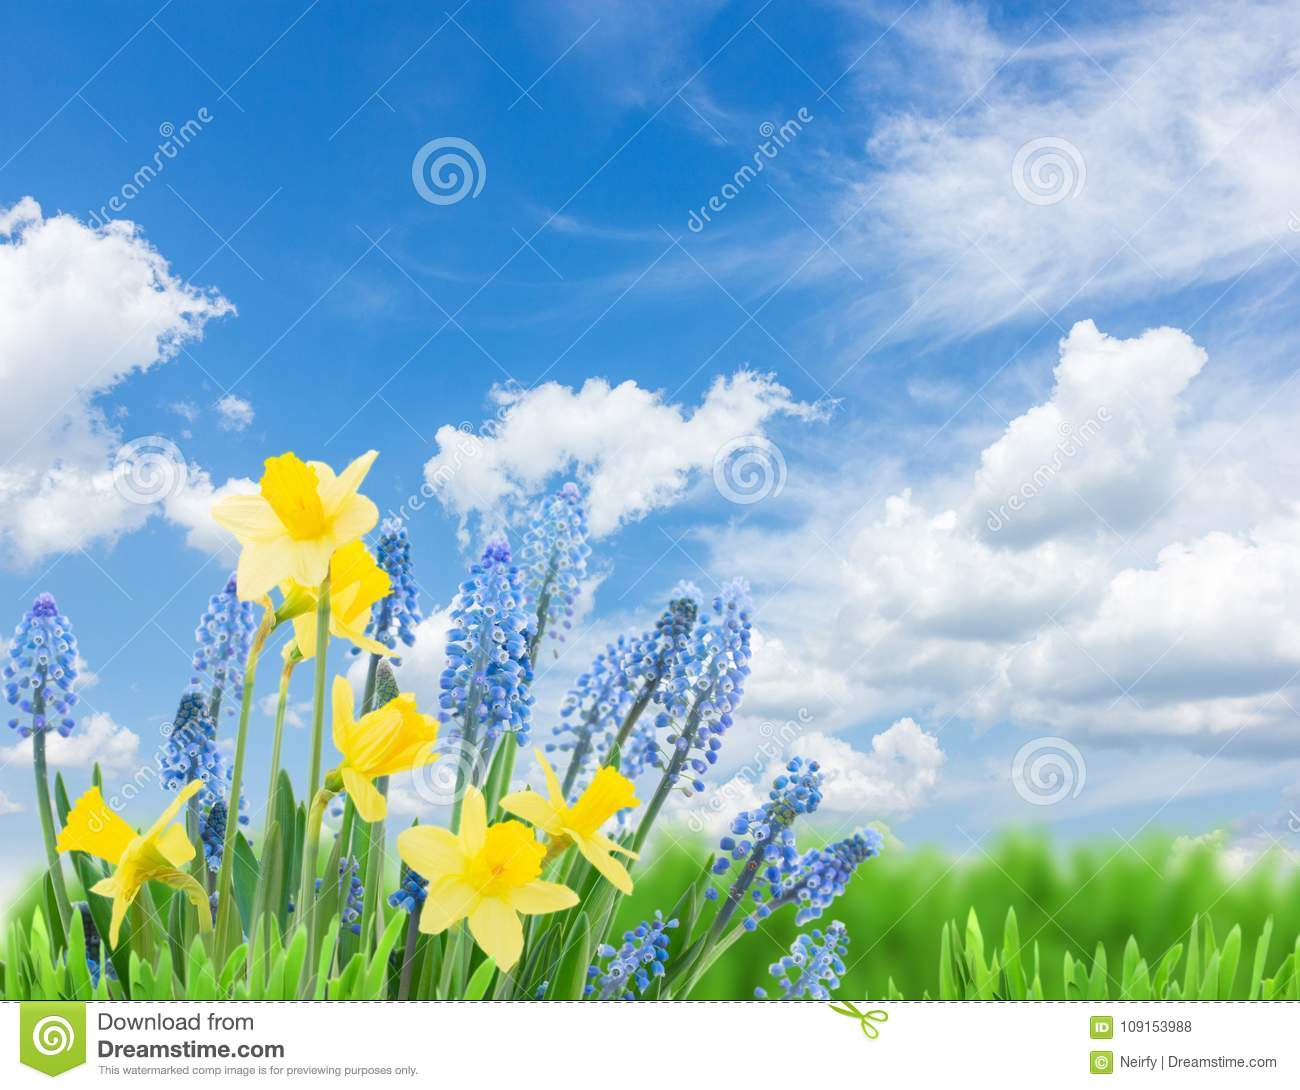 Spring Bluebells And Daffodils Stock Photo - Image of ...